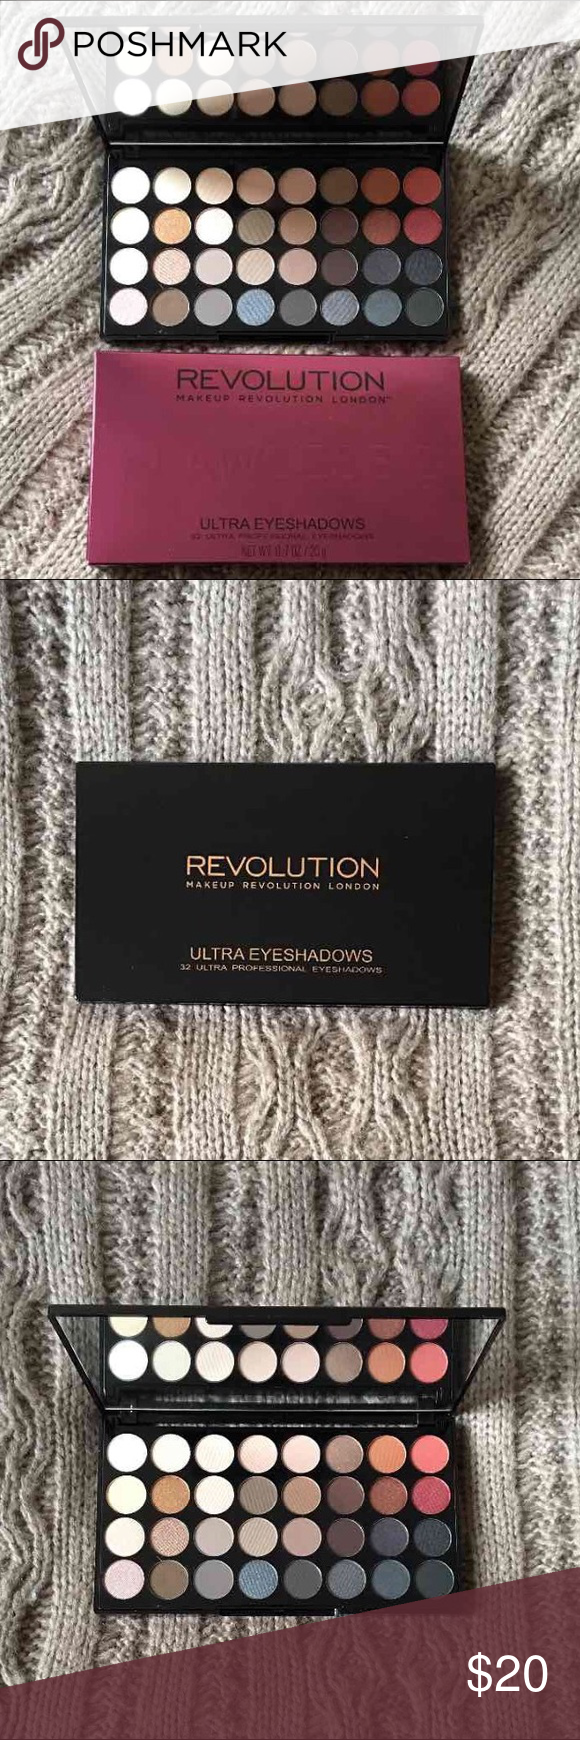 Makeup Revolution London Flawless 2 By Makeup Revolution